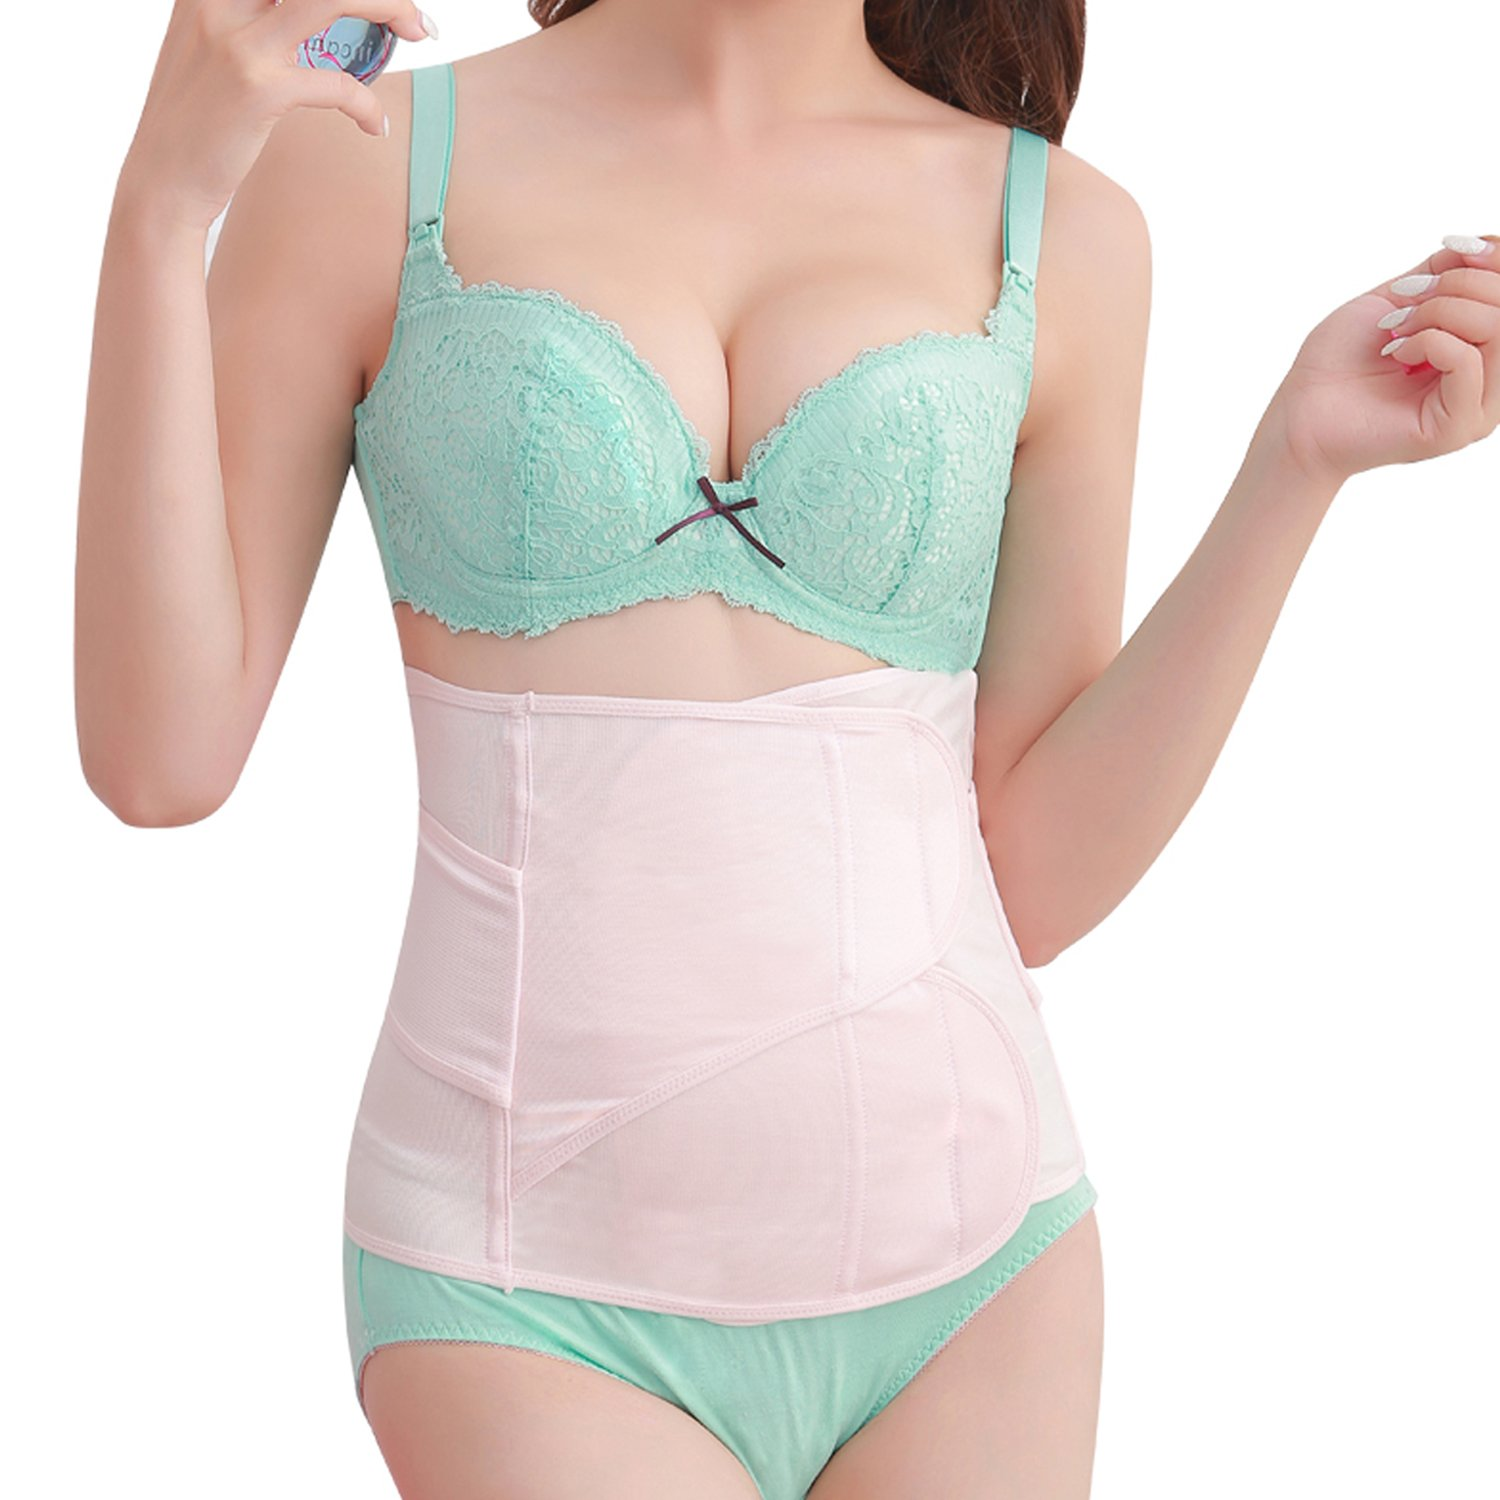 Picotee Postpartum Support Band Recovery Belly Wrap Waist Pelvis Belts C Section Girdle Postnatal Shapewear